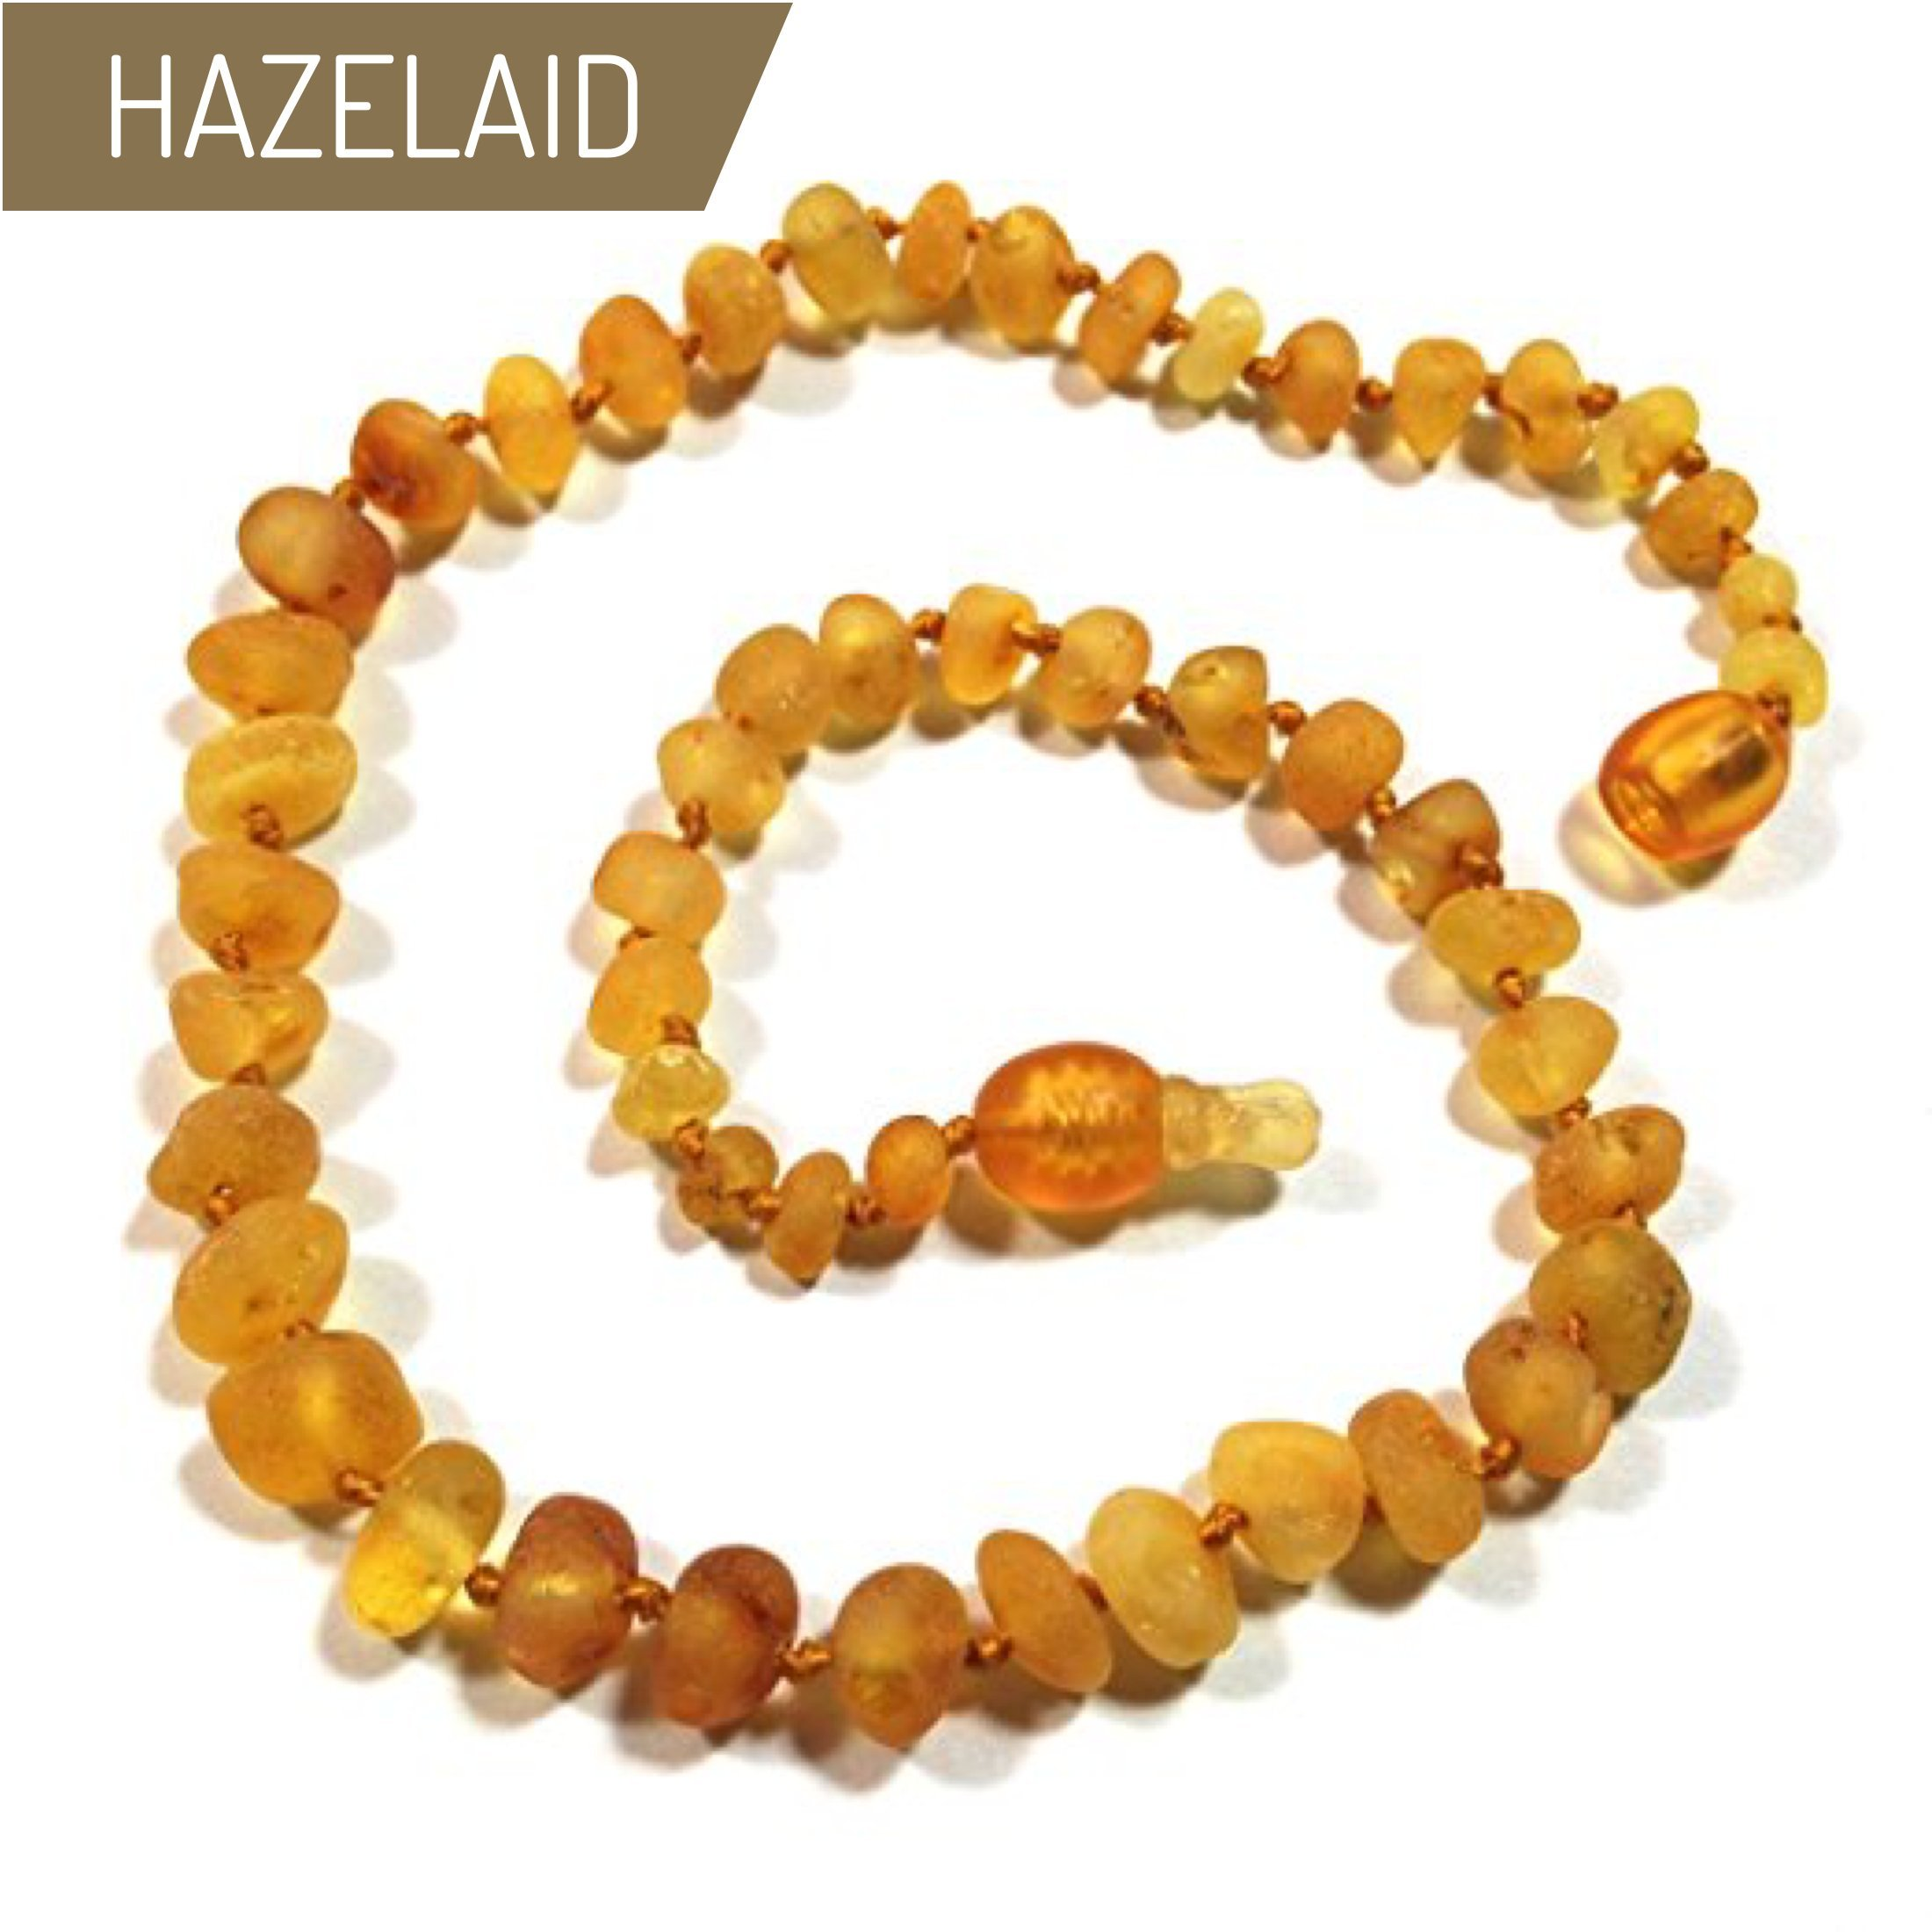 Hazelaid (TM) 12'' Pop-Clasp Baltic Amber Caramel Necklace